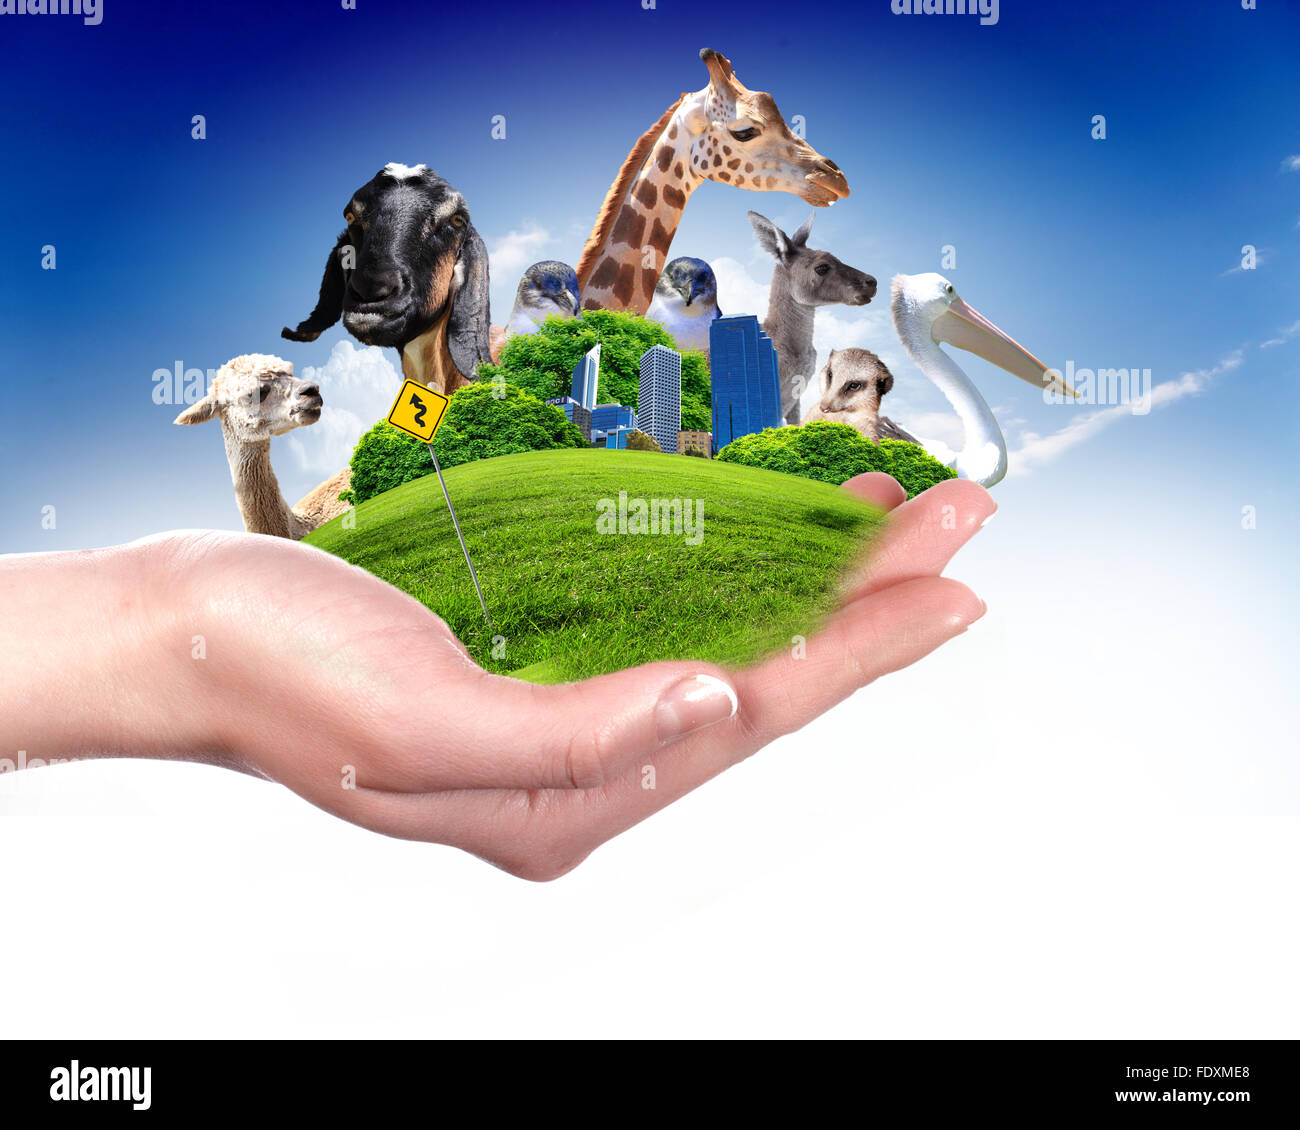 Green world and wildlife protection concept collage - Stock Image